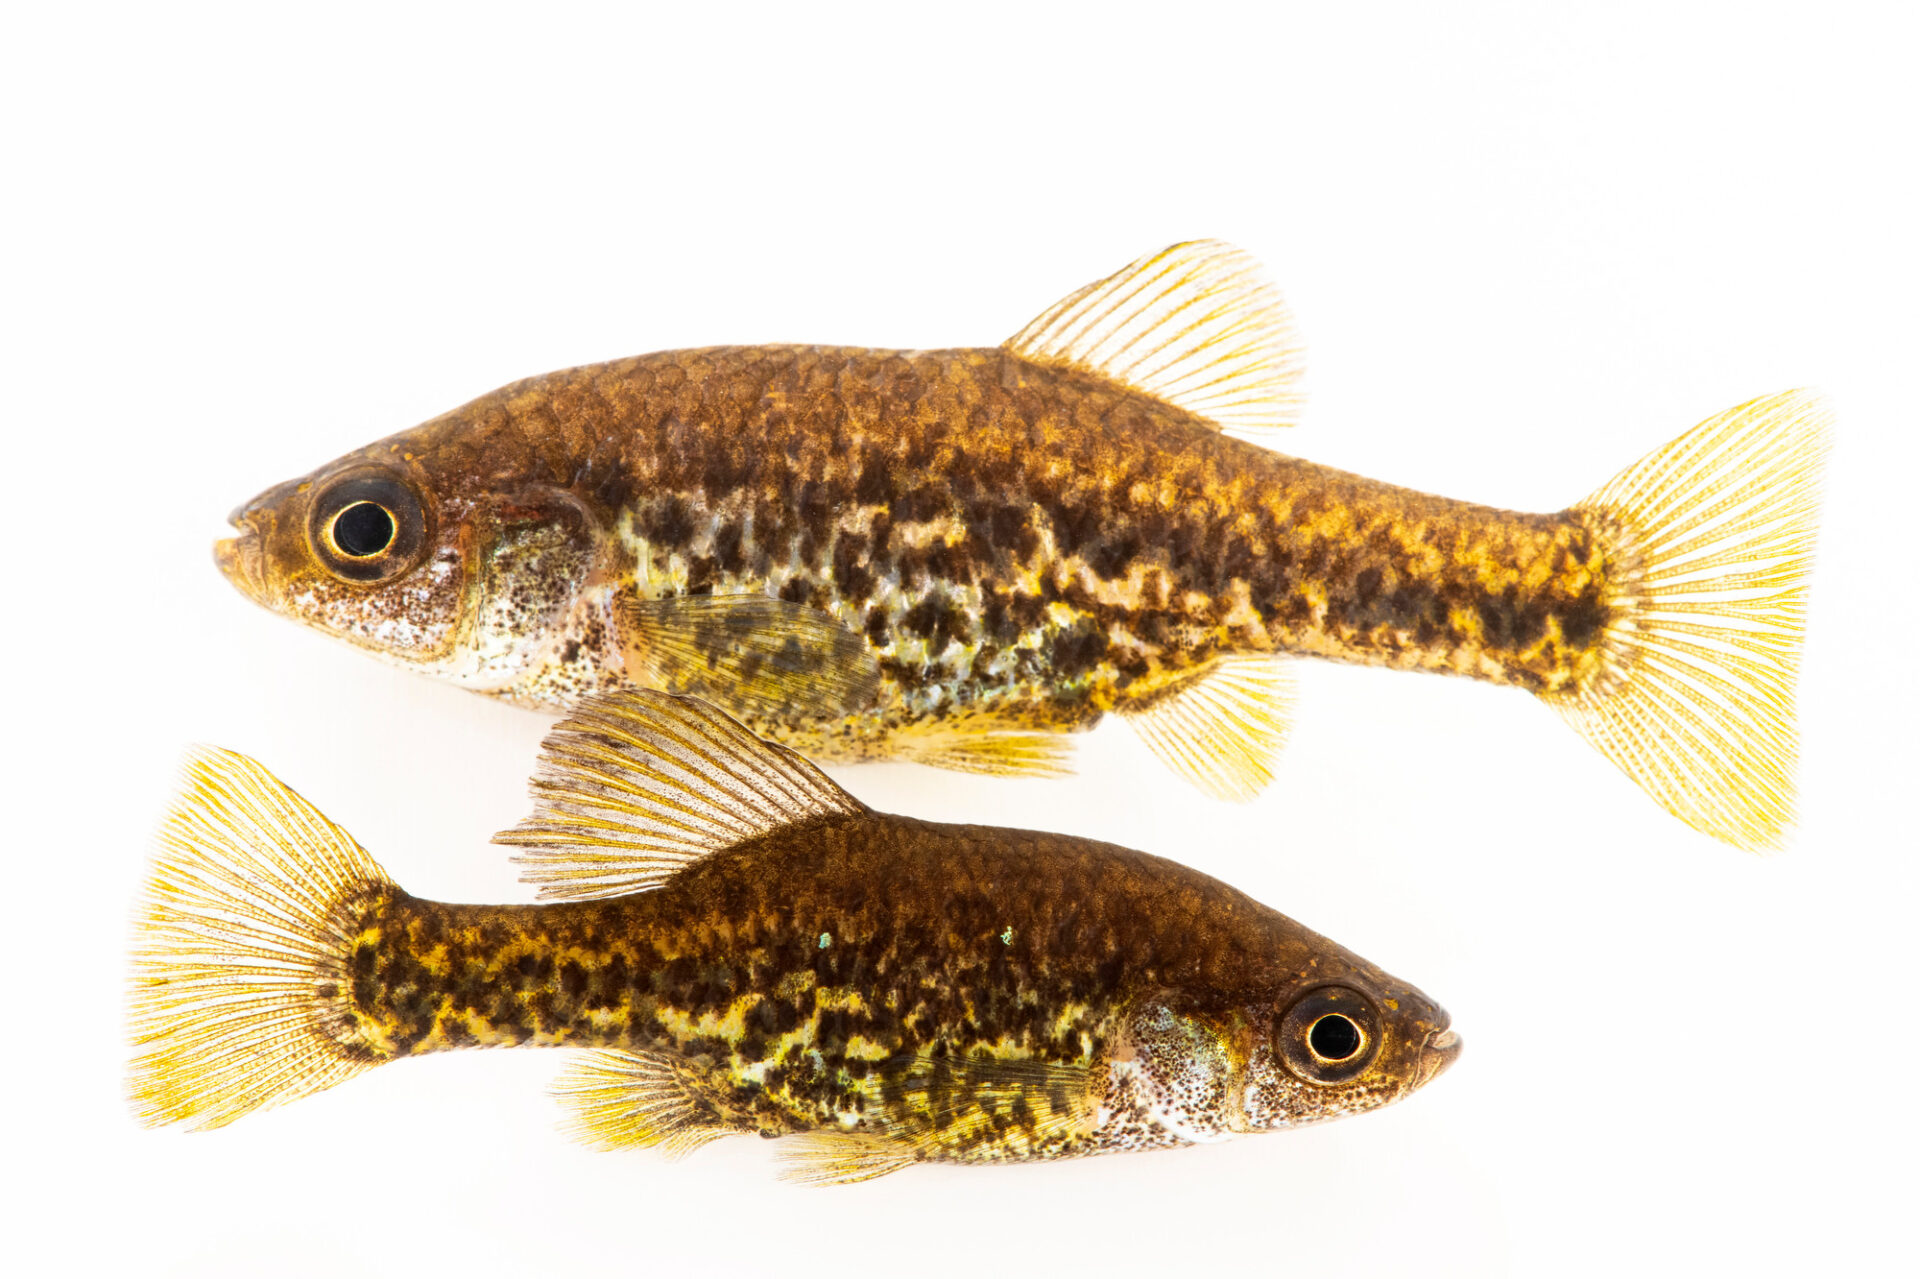 Photo: A critically endangered pair of polka-dot splitfin (Chapalichthys pardalis) at Plzen Zoo in the Czech Republic.